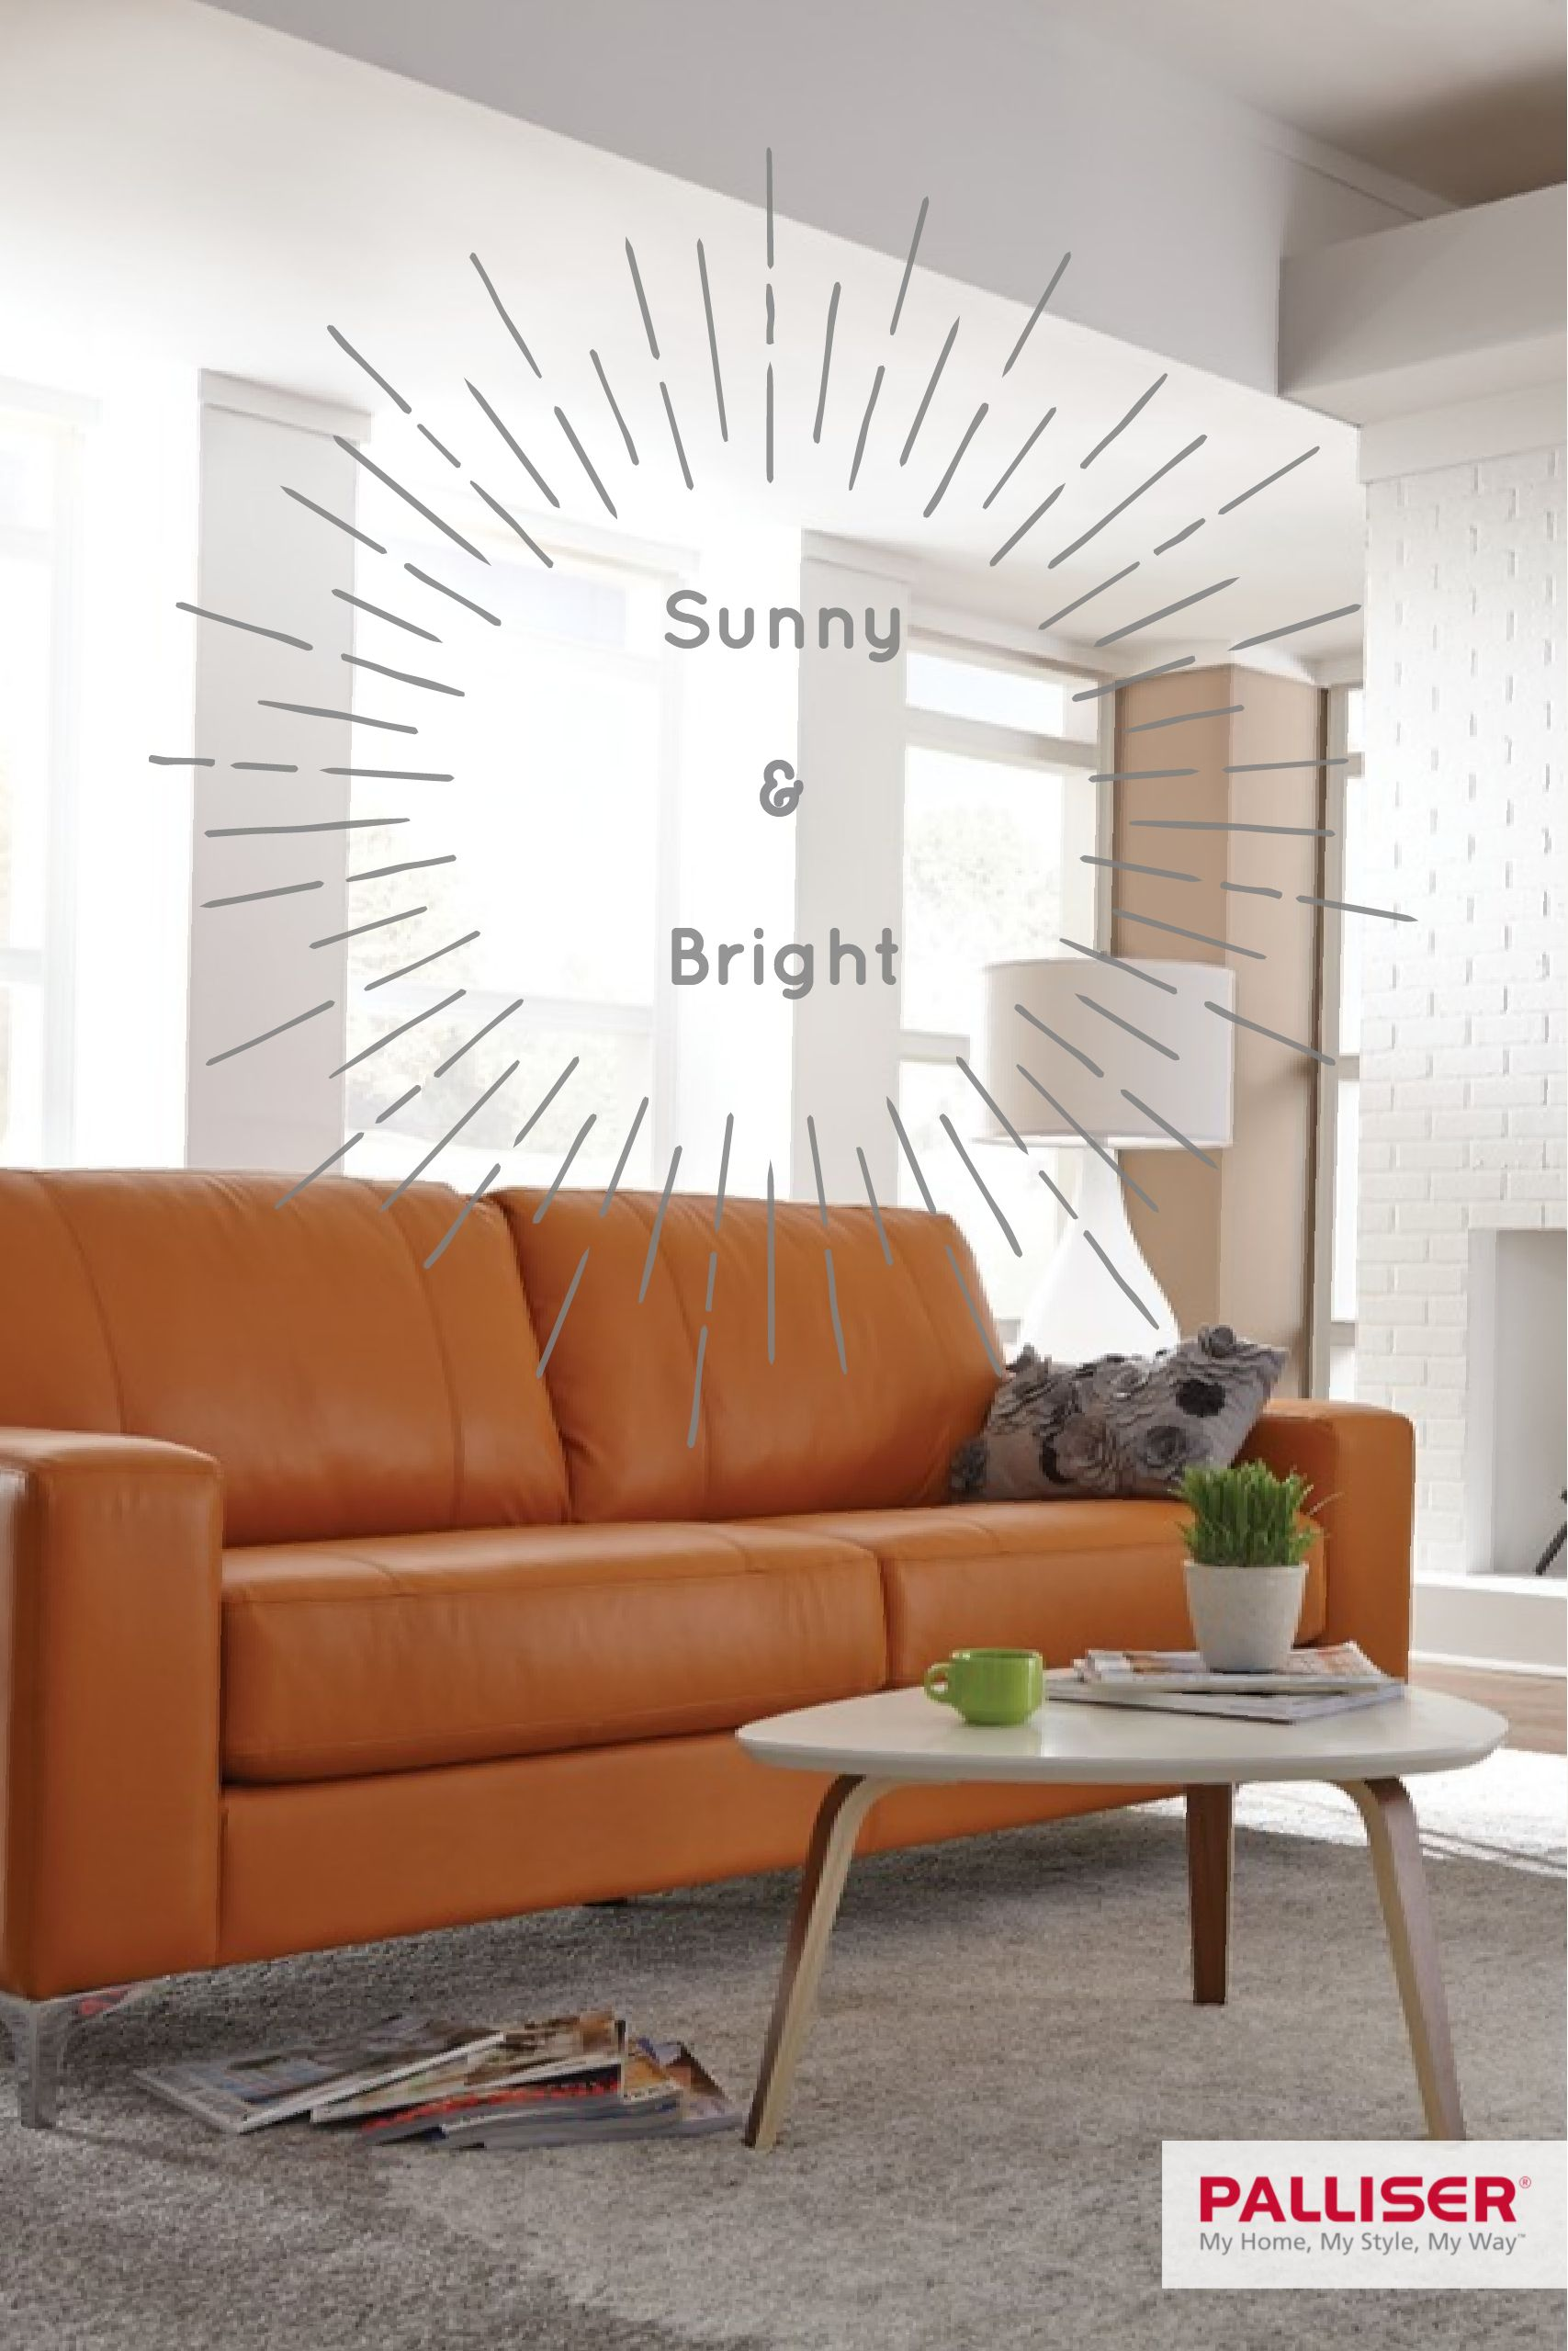 Choose A Rust Hued Sofa For A Mellow Pop Of Colour In Your Living Room Home Theater Seating Palliser Furniture Home Decor #rust #color #living #room #sets